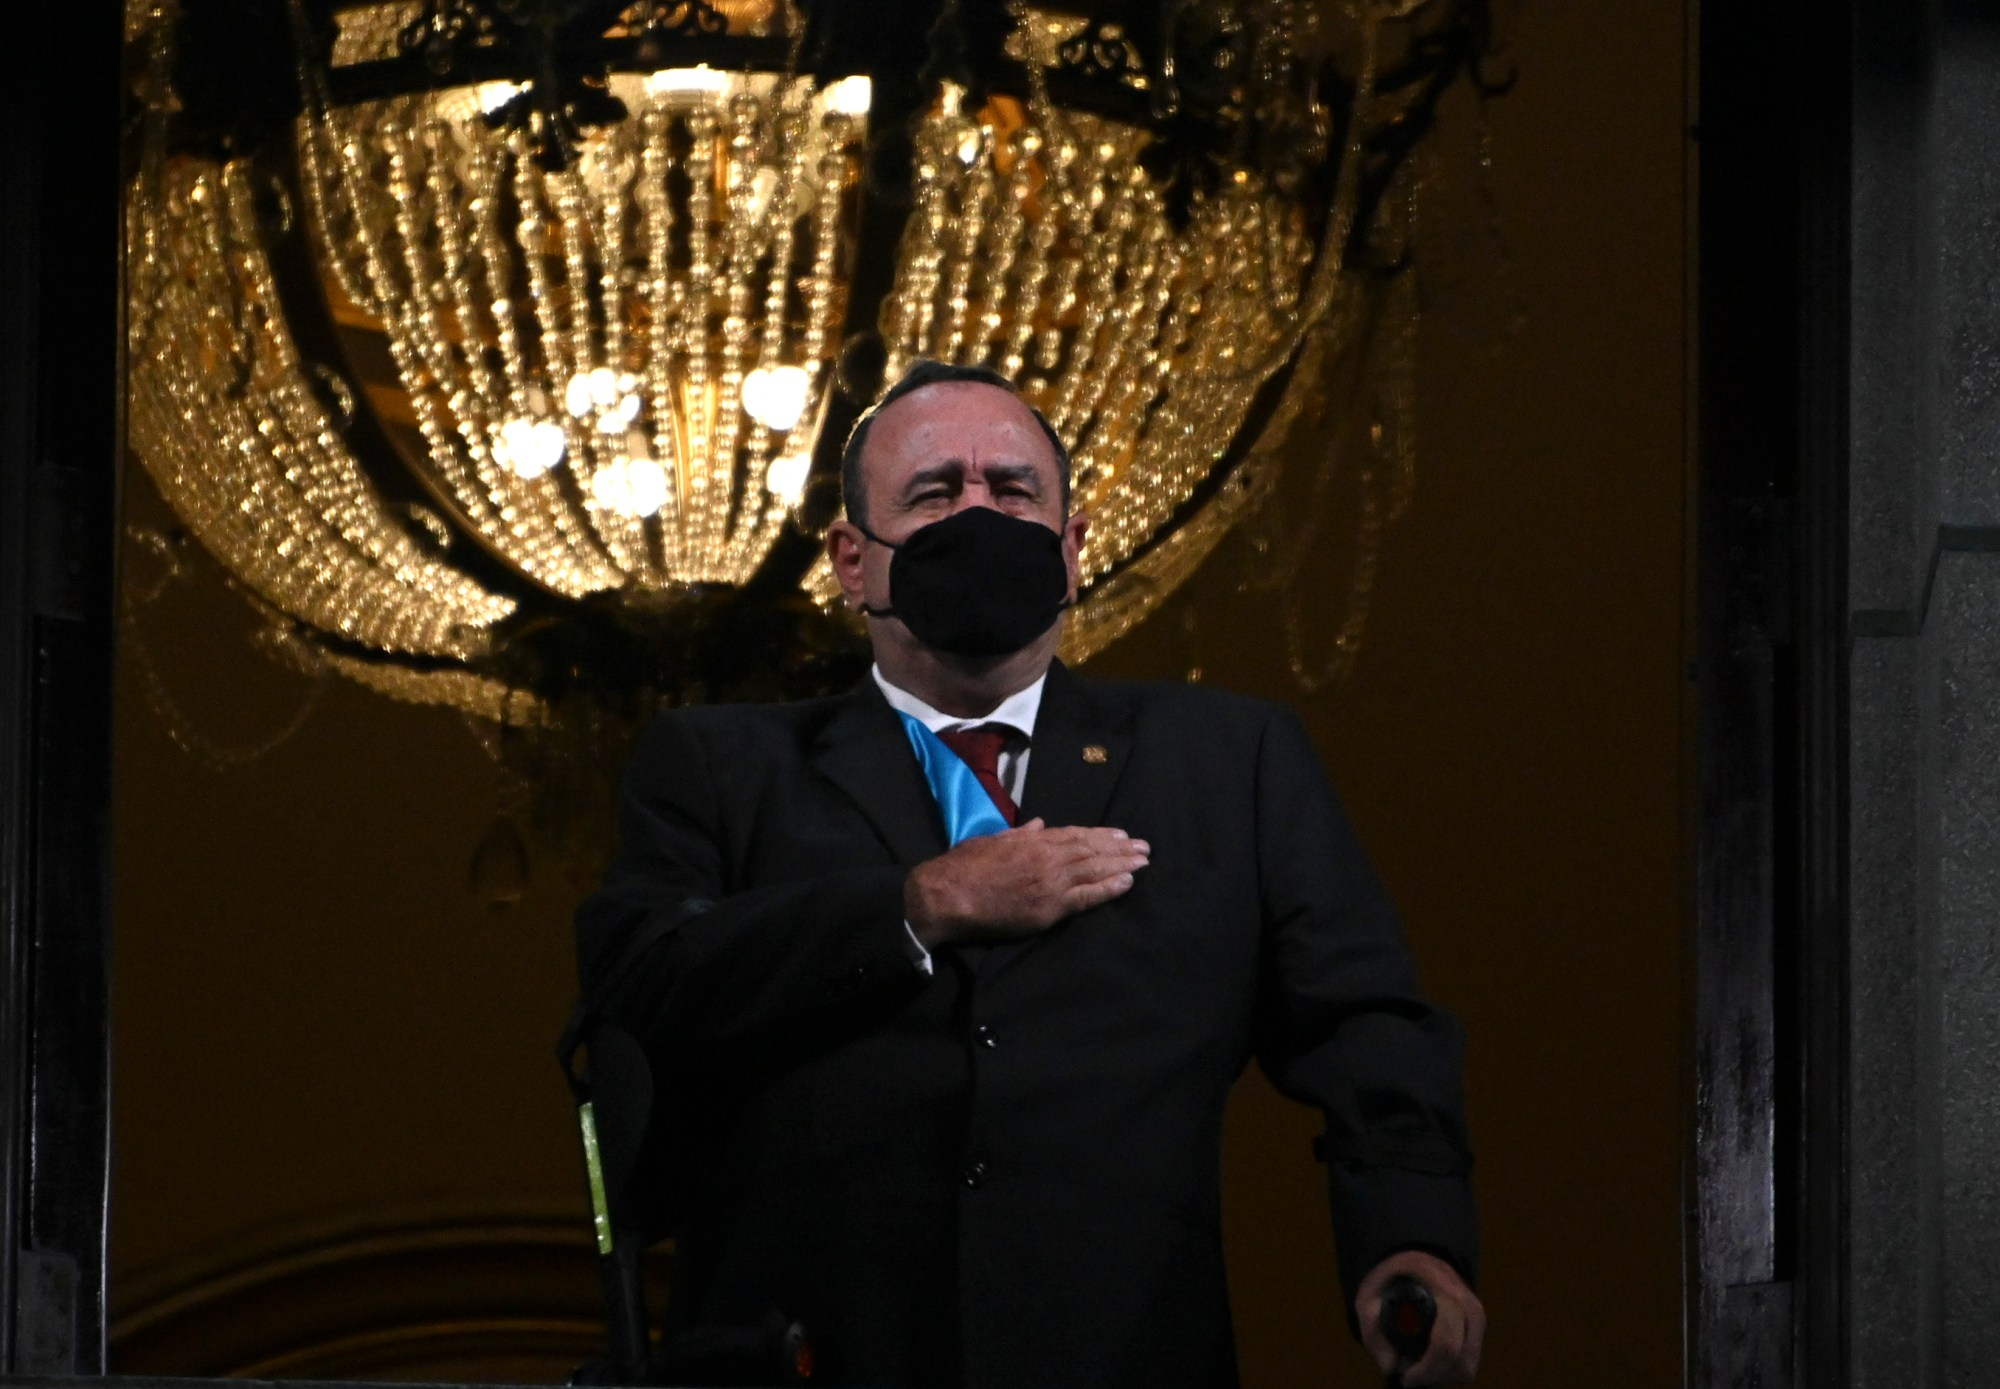 Guatemalan President Alejandro Giammattei wearing a face mask, sings the national anthem during the celebrations for the 199th anniversary of the Guatemalan independence in Guatemala City on Sept. 14, 2020. (Johan ORDONEZ/AFP via Getty Images)